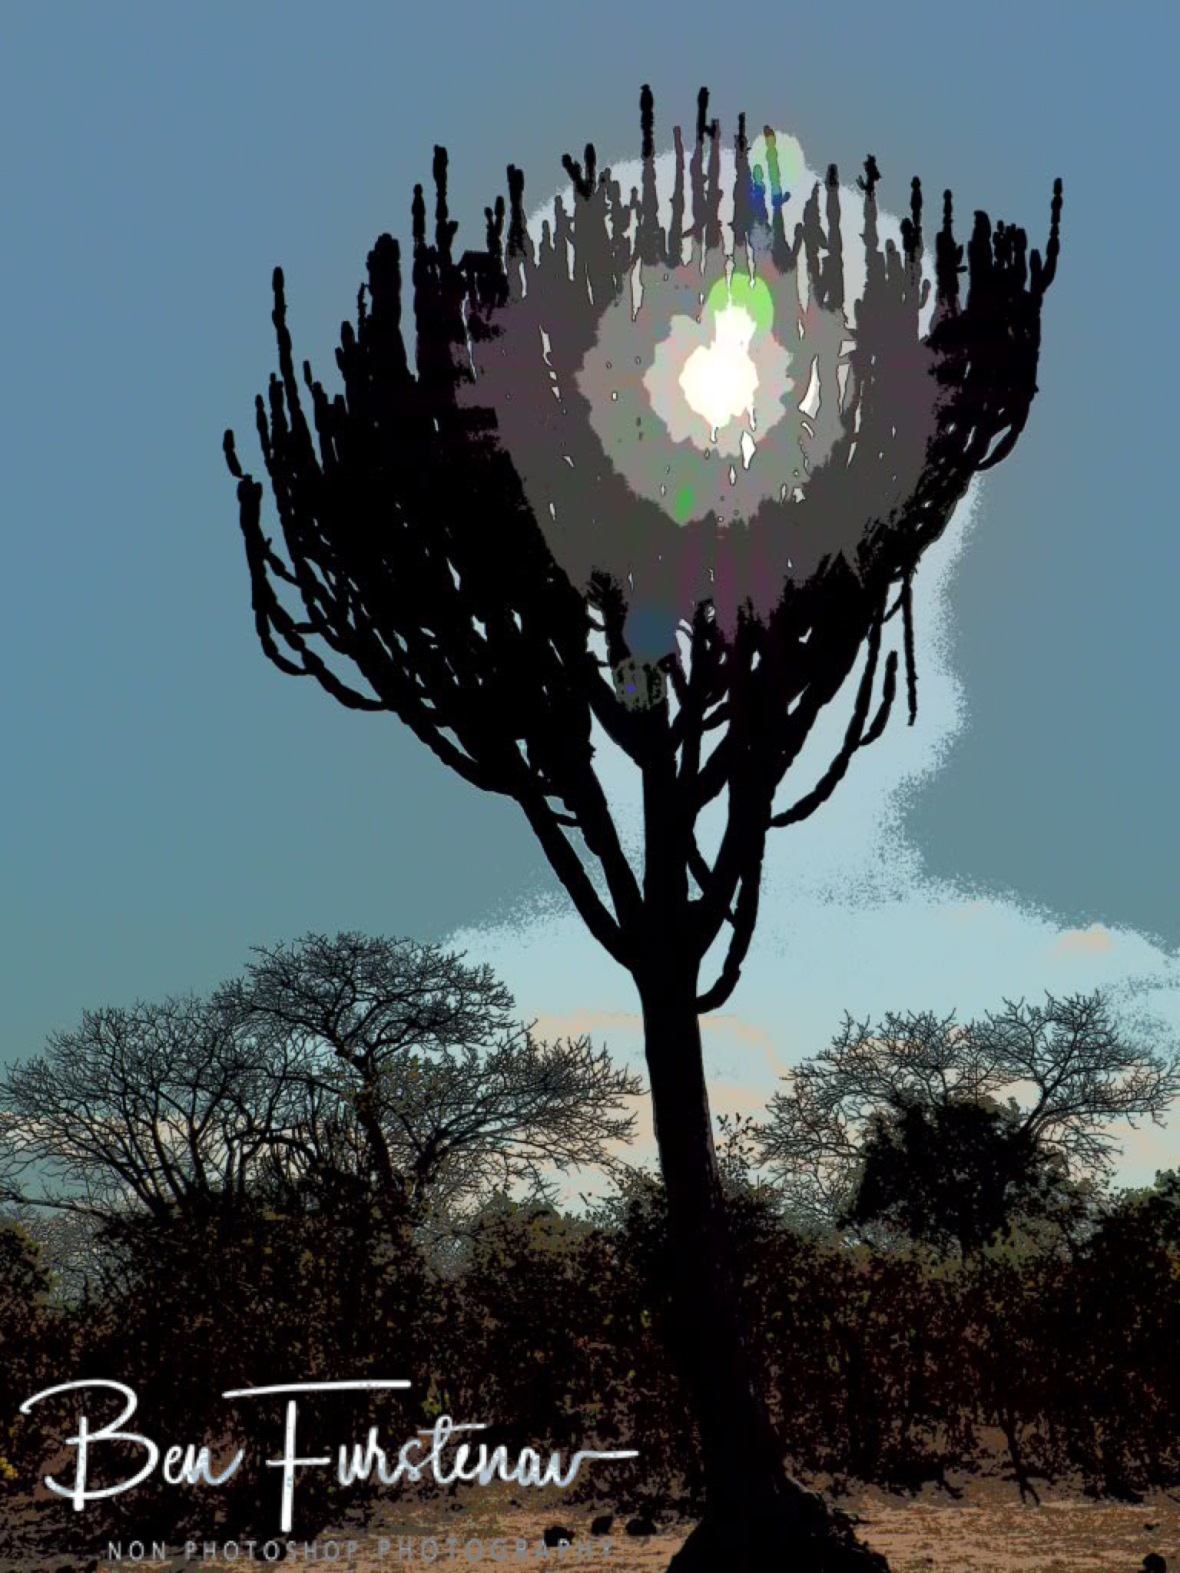 Giant cactus tree umbrella, Vwaza Marsh National Reserve, Malawi